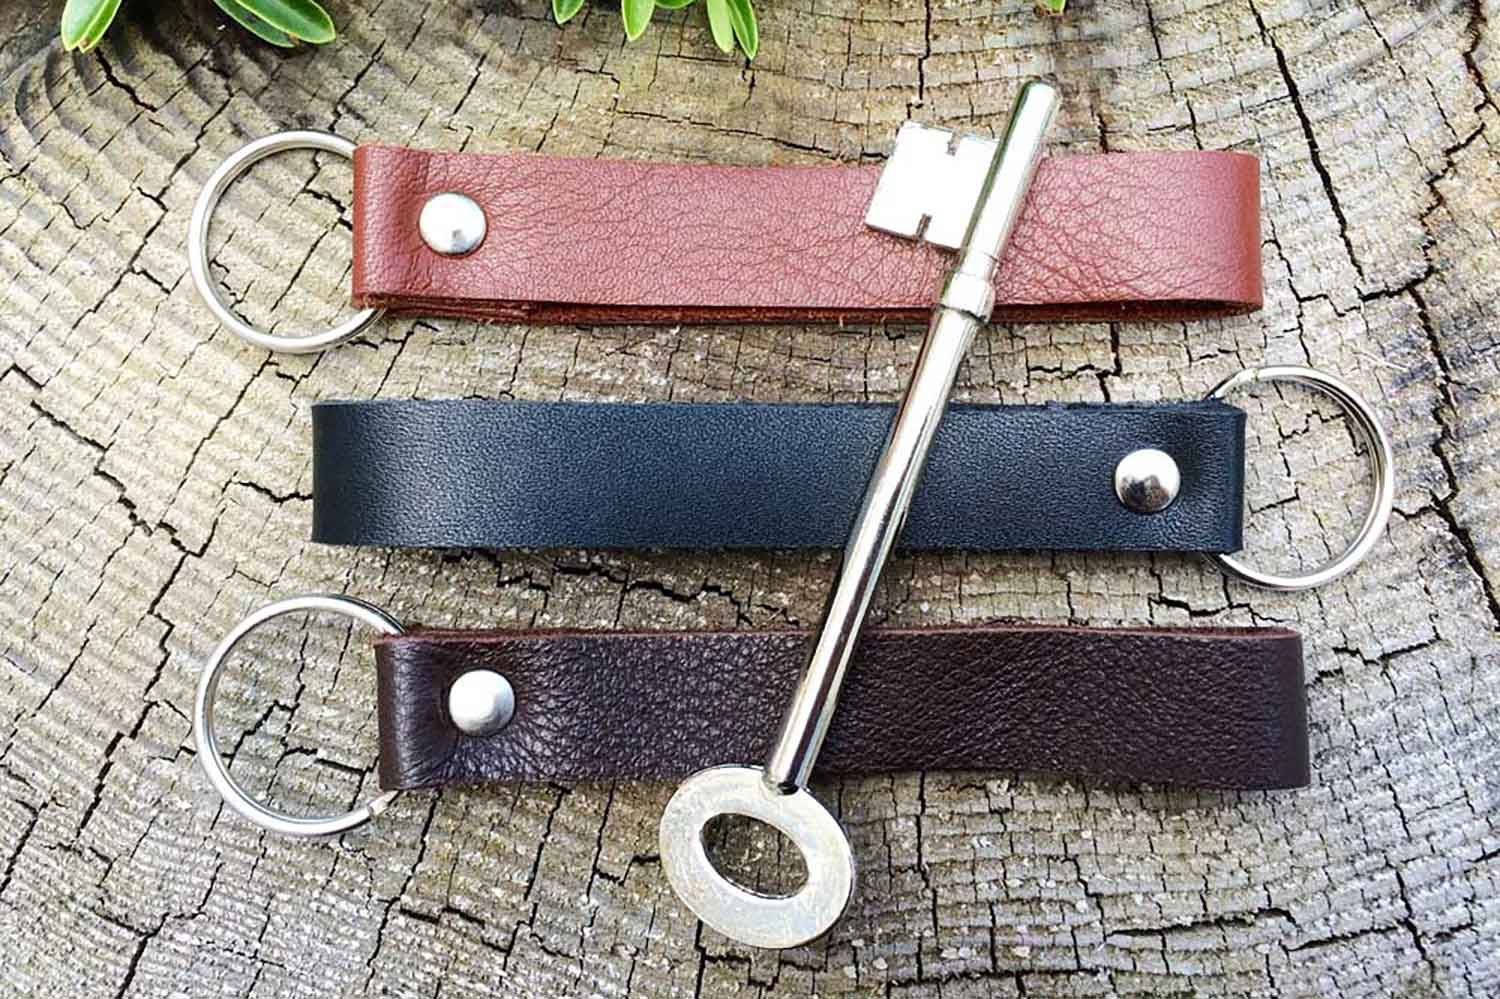 Coordinates keychain from Bookshell available in light brown, dark brown and black leather